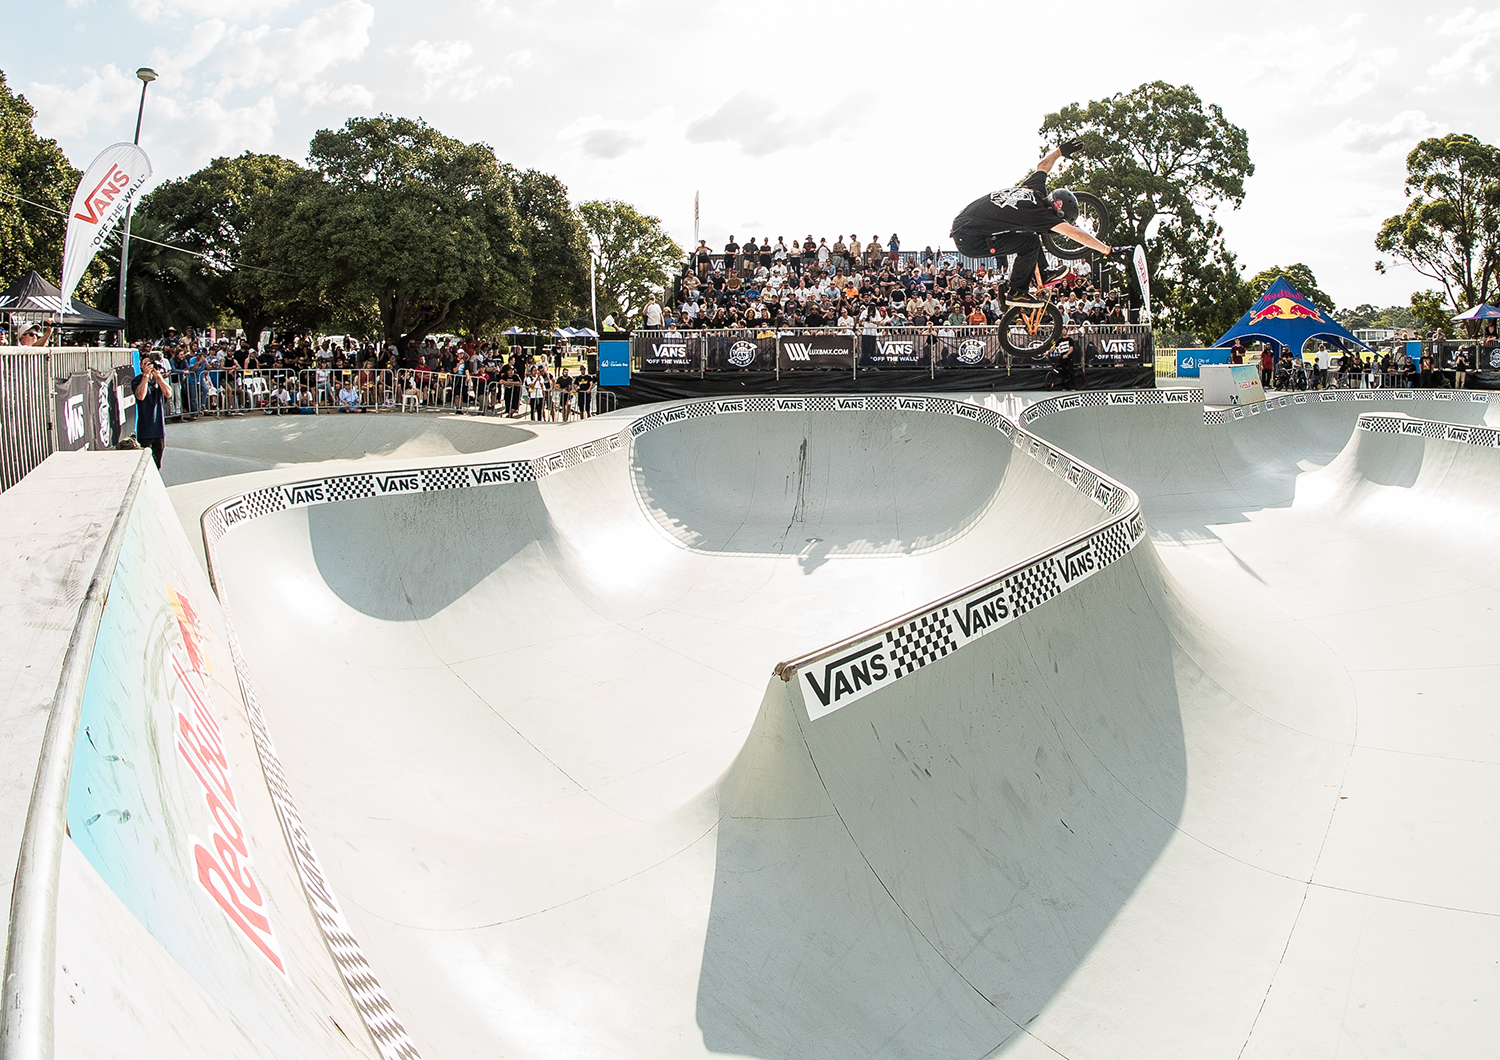 ff773ad5f7 Congrats to Chris James for scoring 2nd at the Vans BMX Pro Cup